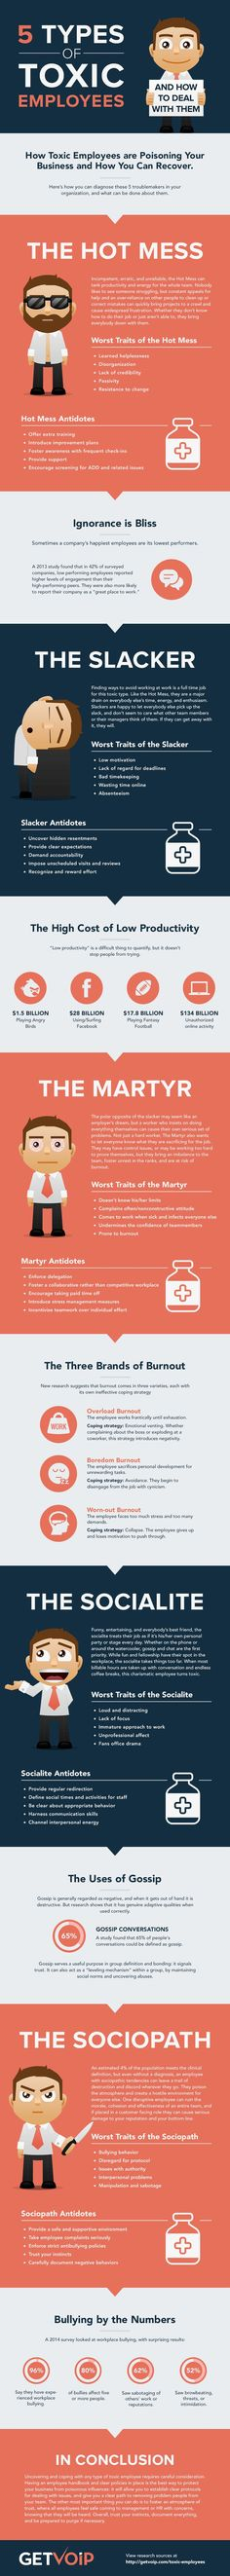 5 Types of Toxic Employees and How to Overcome Them